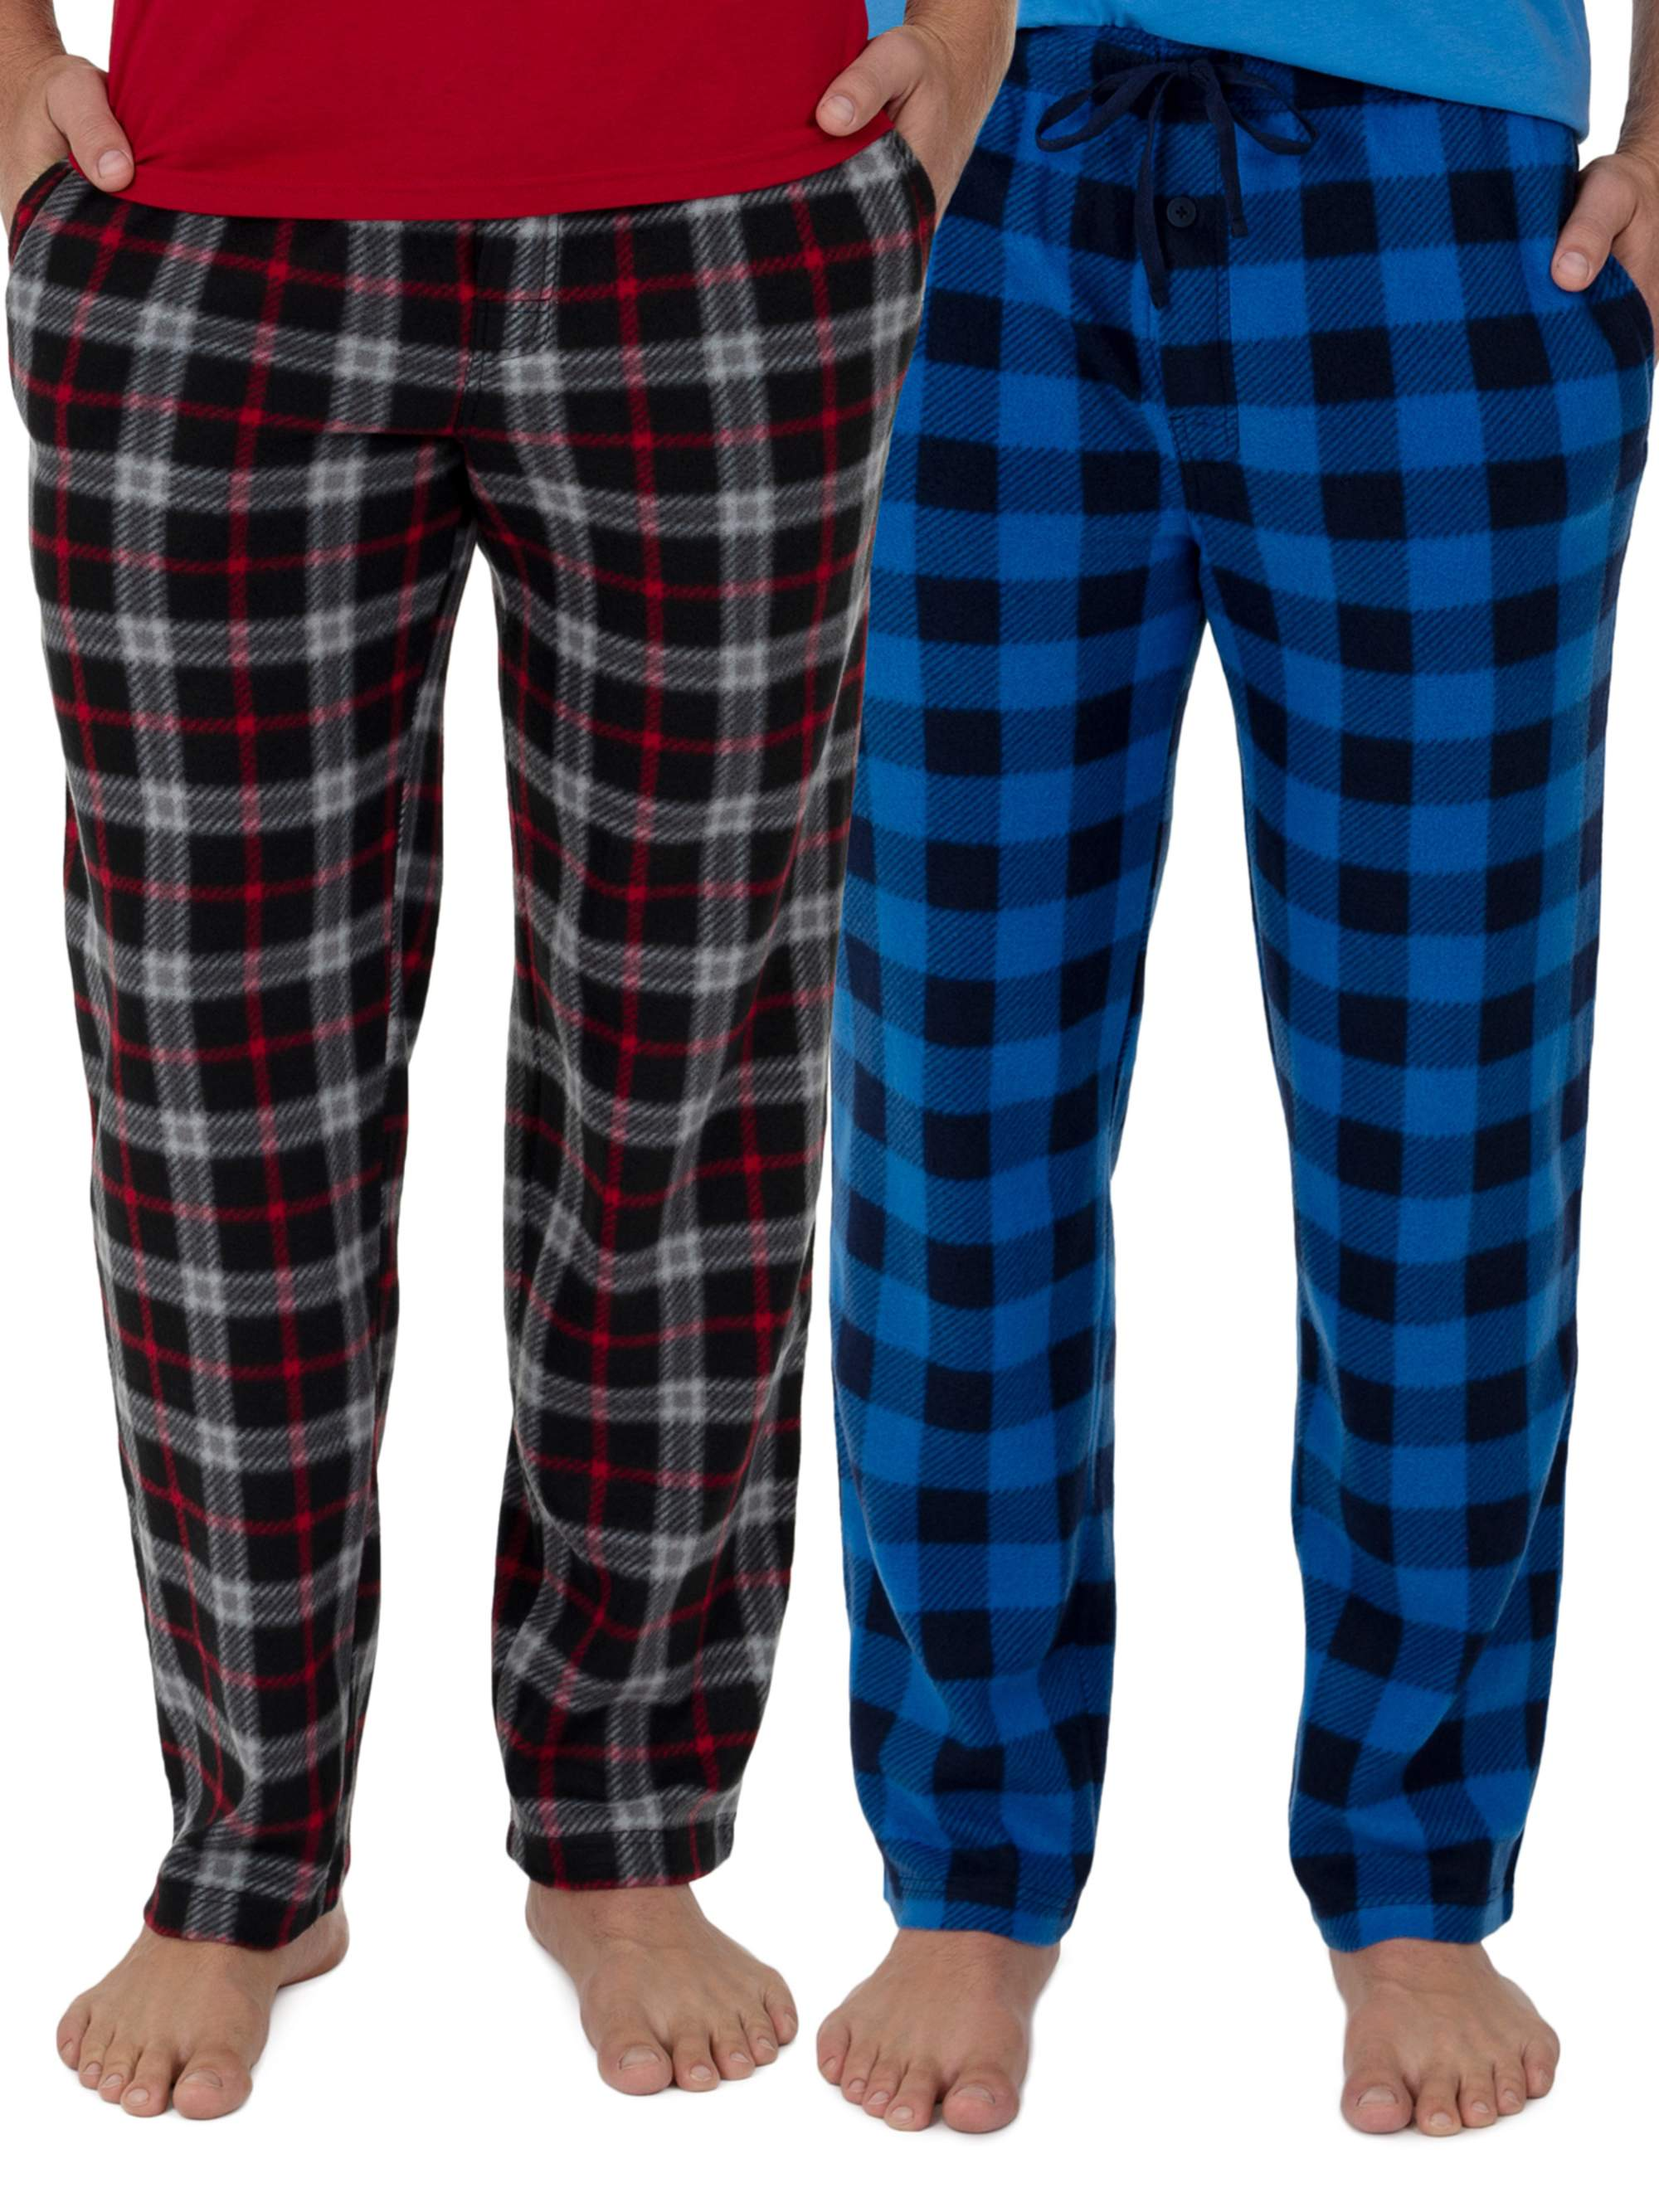 Mens Haigman 7090 Poly Cotton 2 Pack Pyjama Bottoms